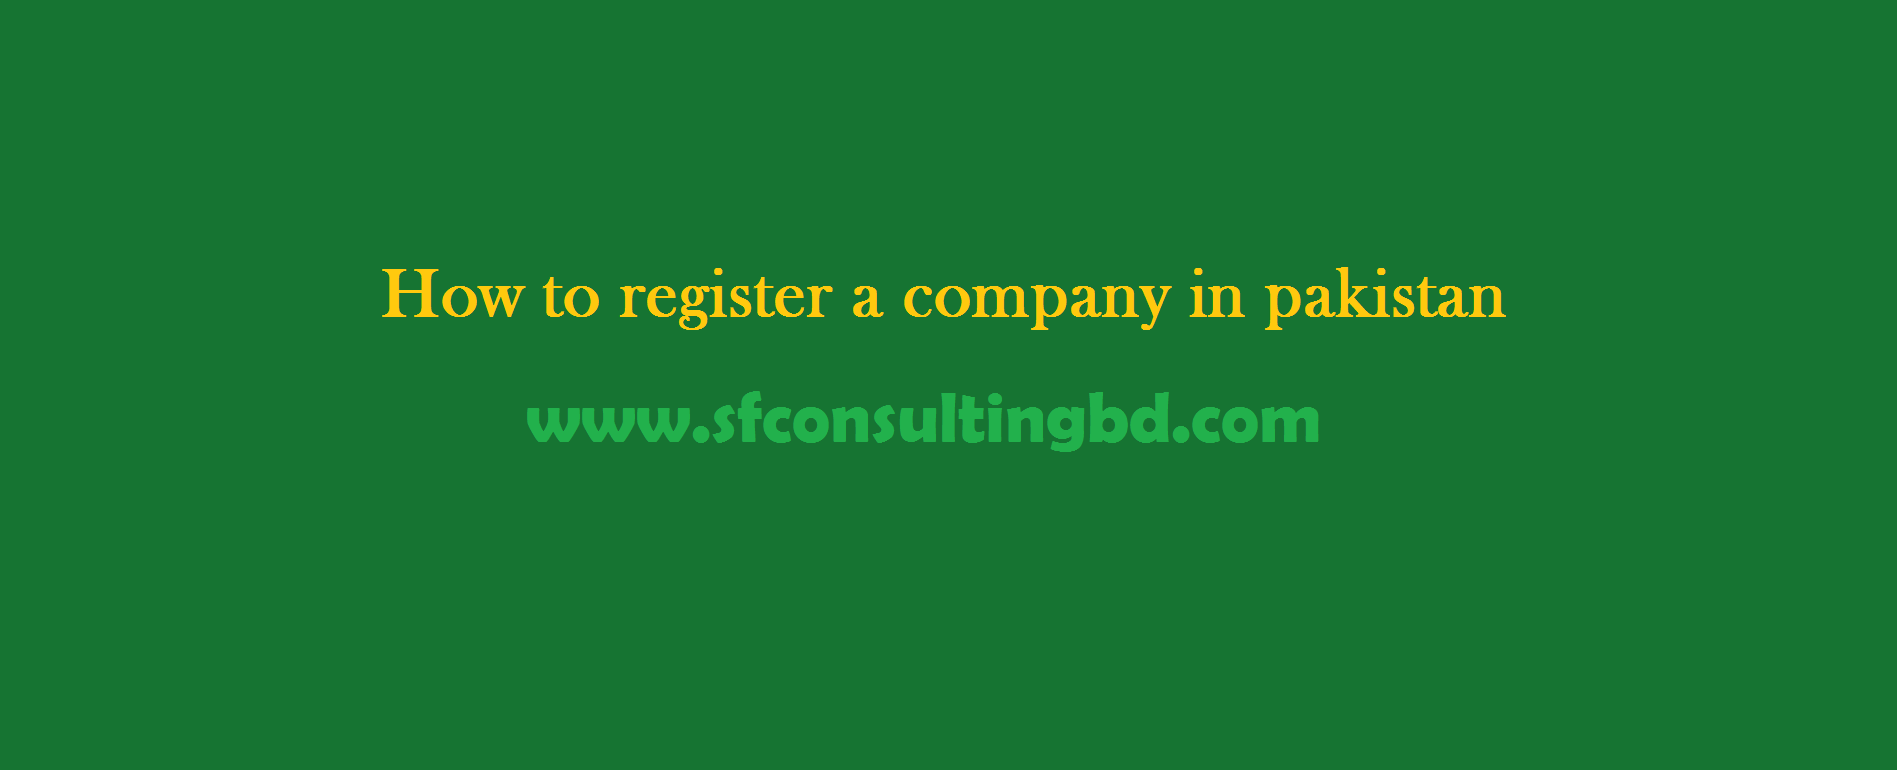 "<img src=""How-to-register-a-company-in-Pakistan.png"" alt=""How to register a company in Pakistan""/>"